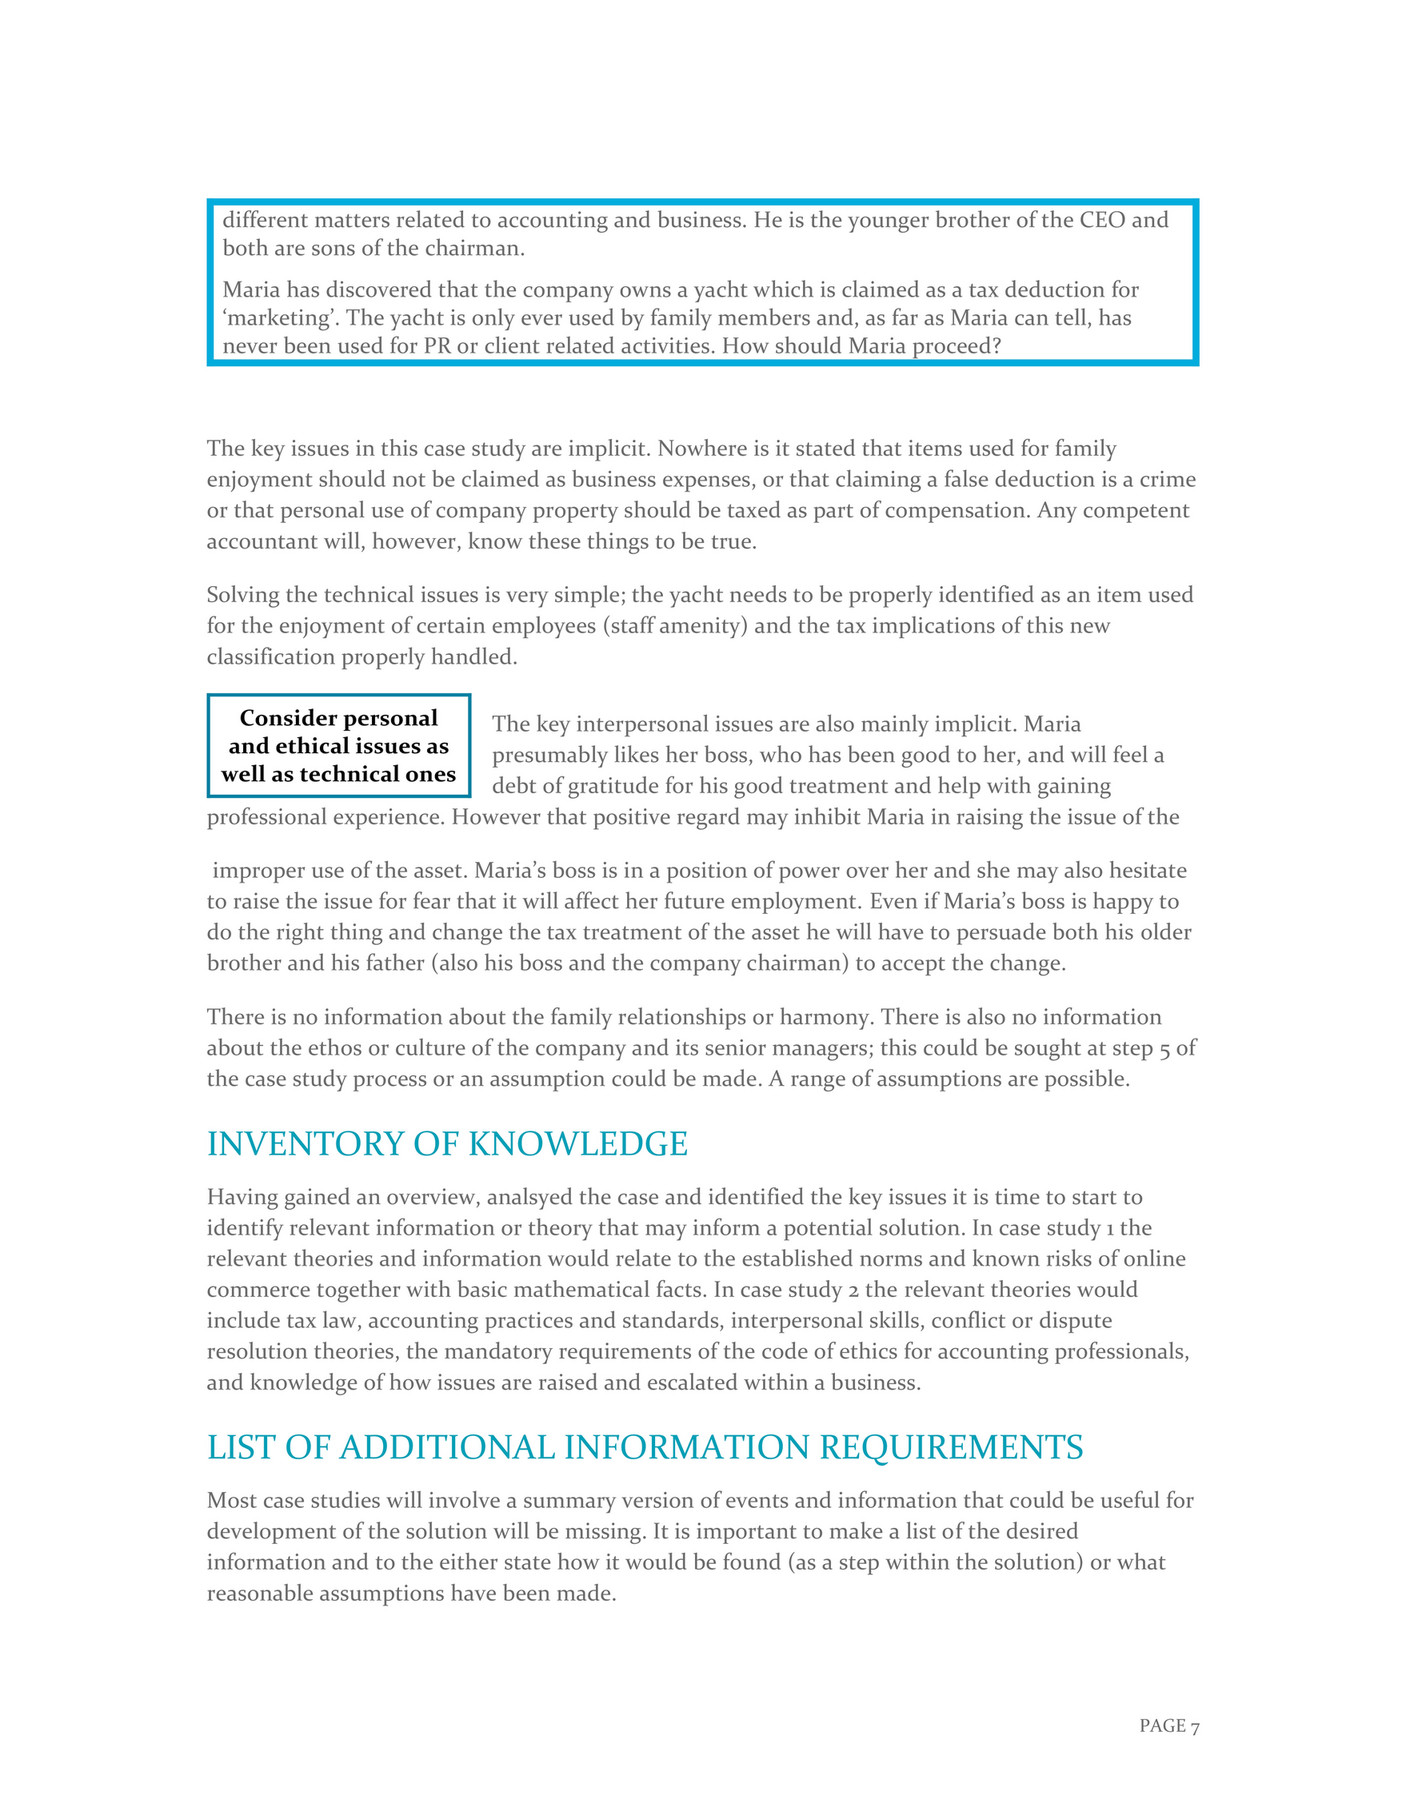 Ozrep Pty Ltd - How to Answer Case Study Questions - Page 8